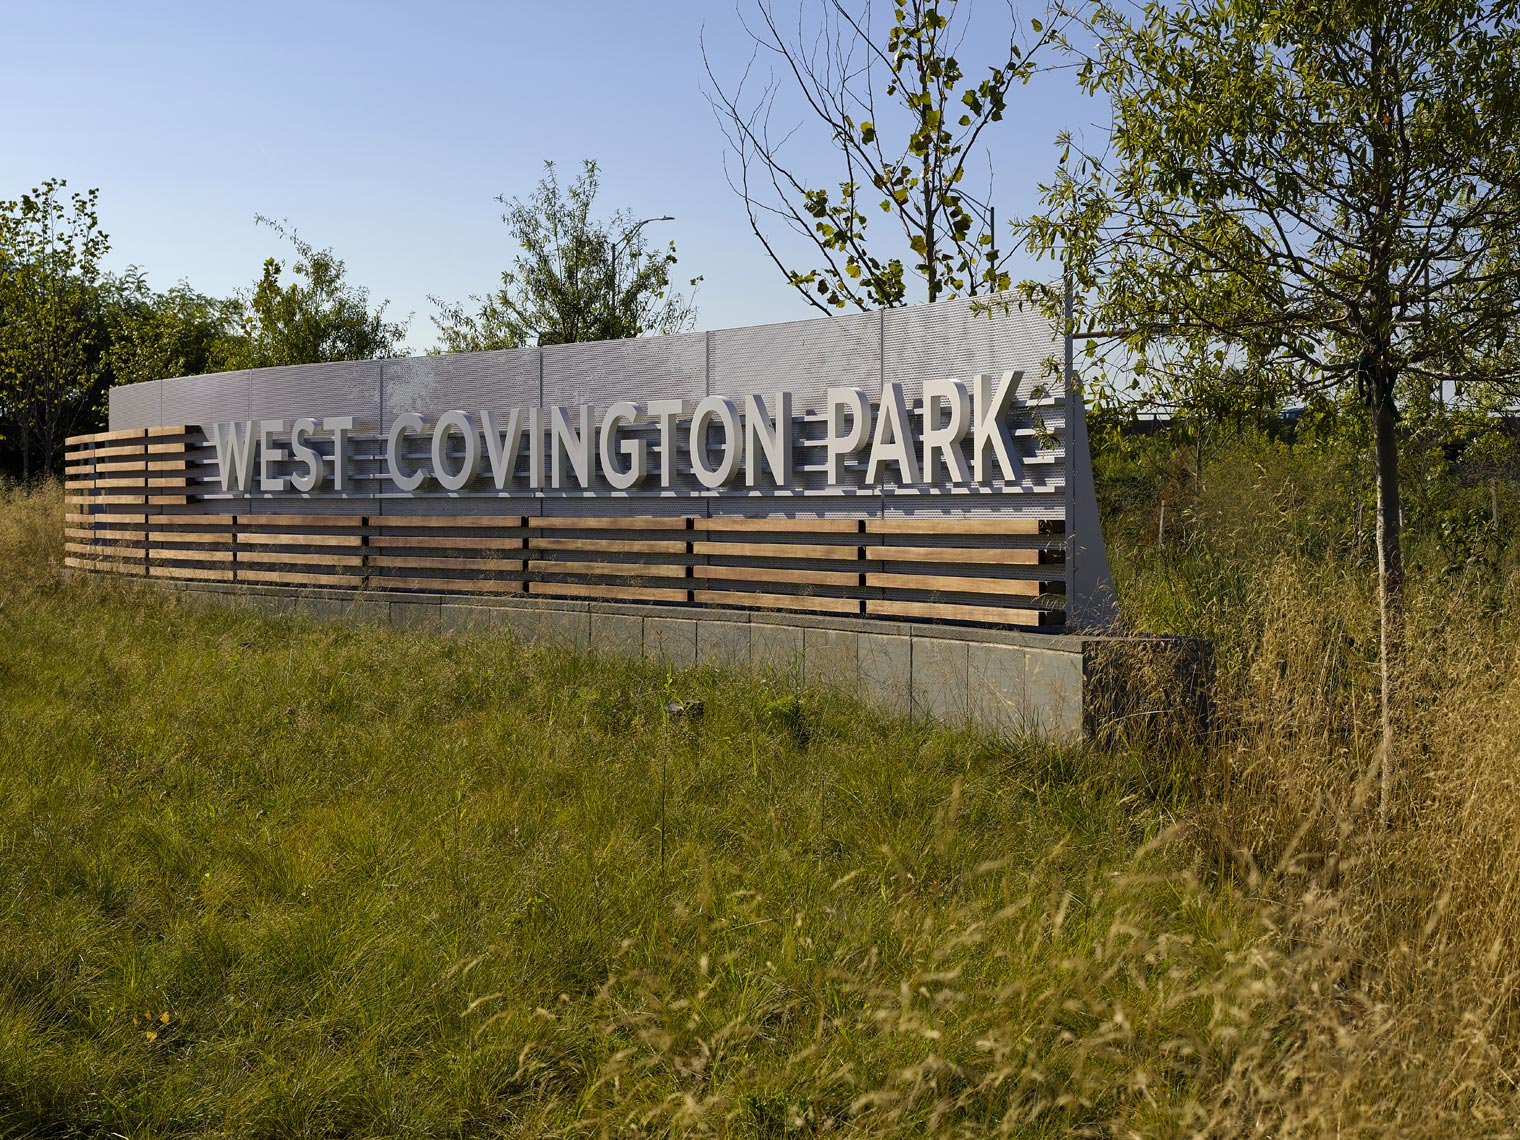 West-Covington-Park_a_WEB